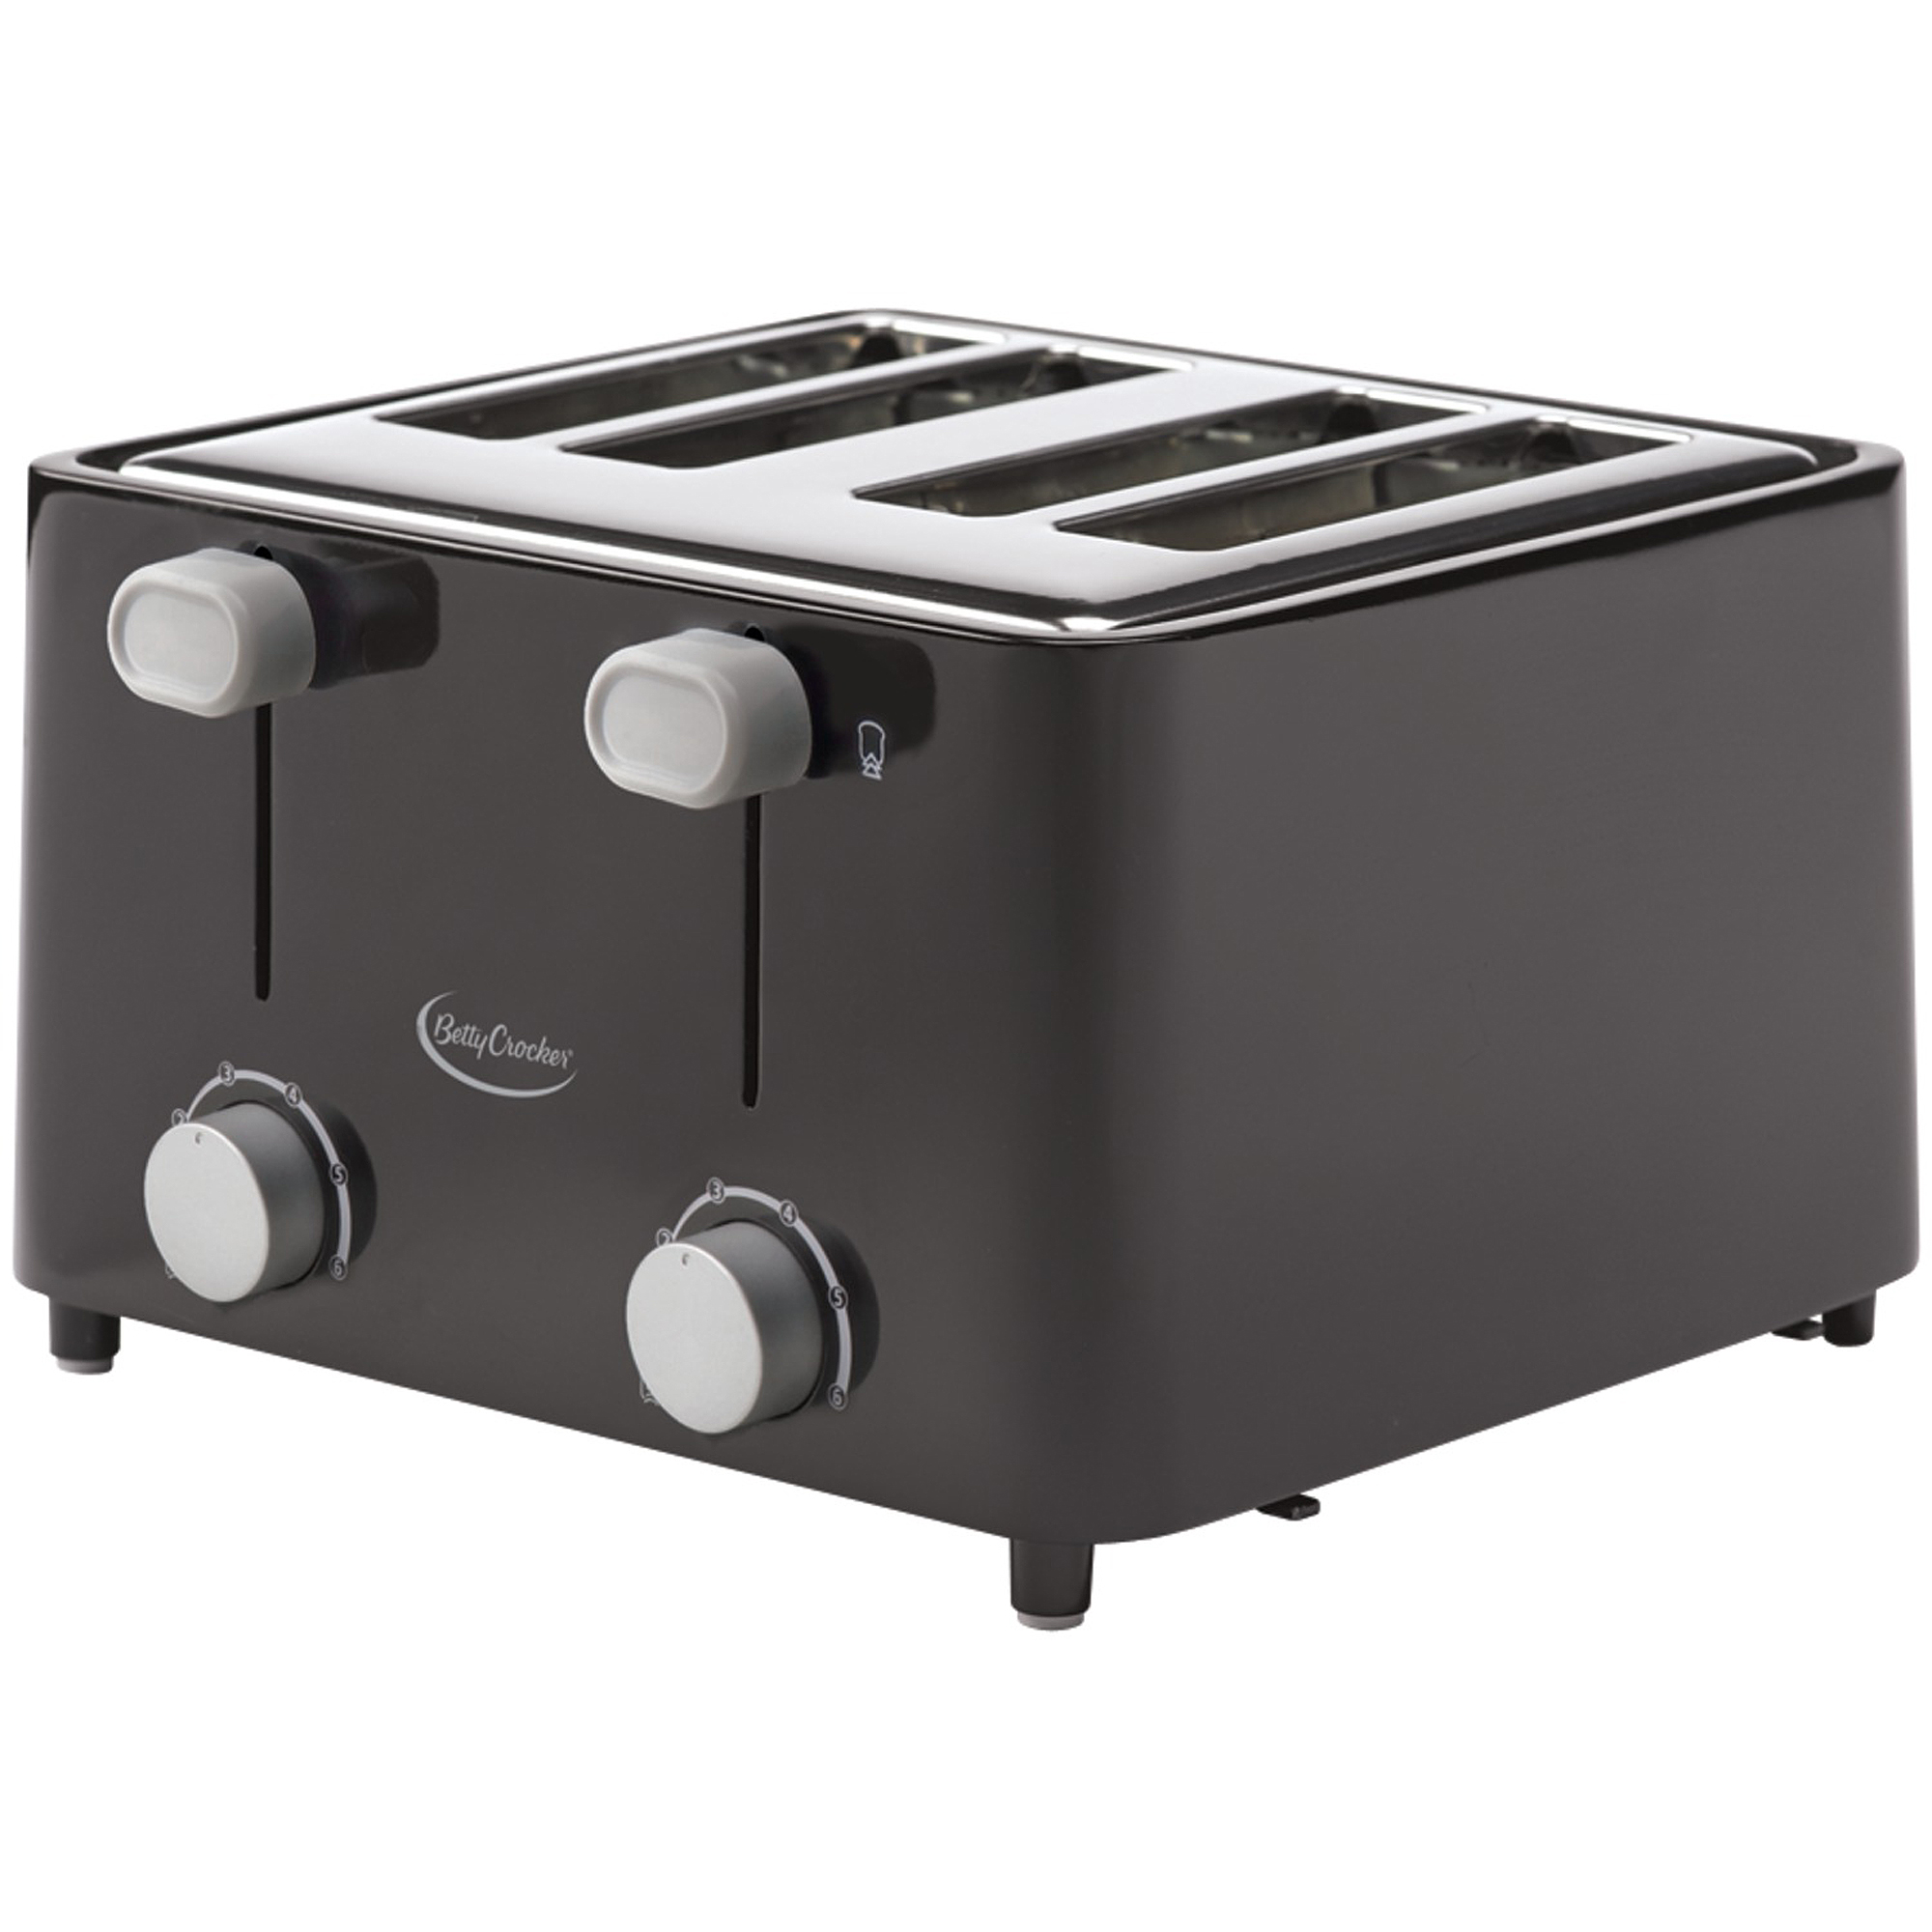 Betty Crocker 4-Slice Toaster, Black by BETTY CROCKER